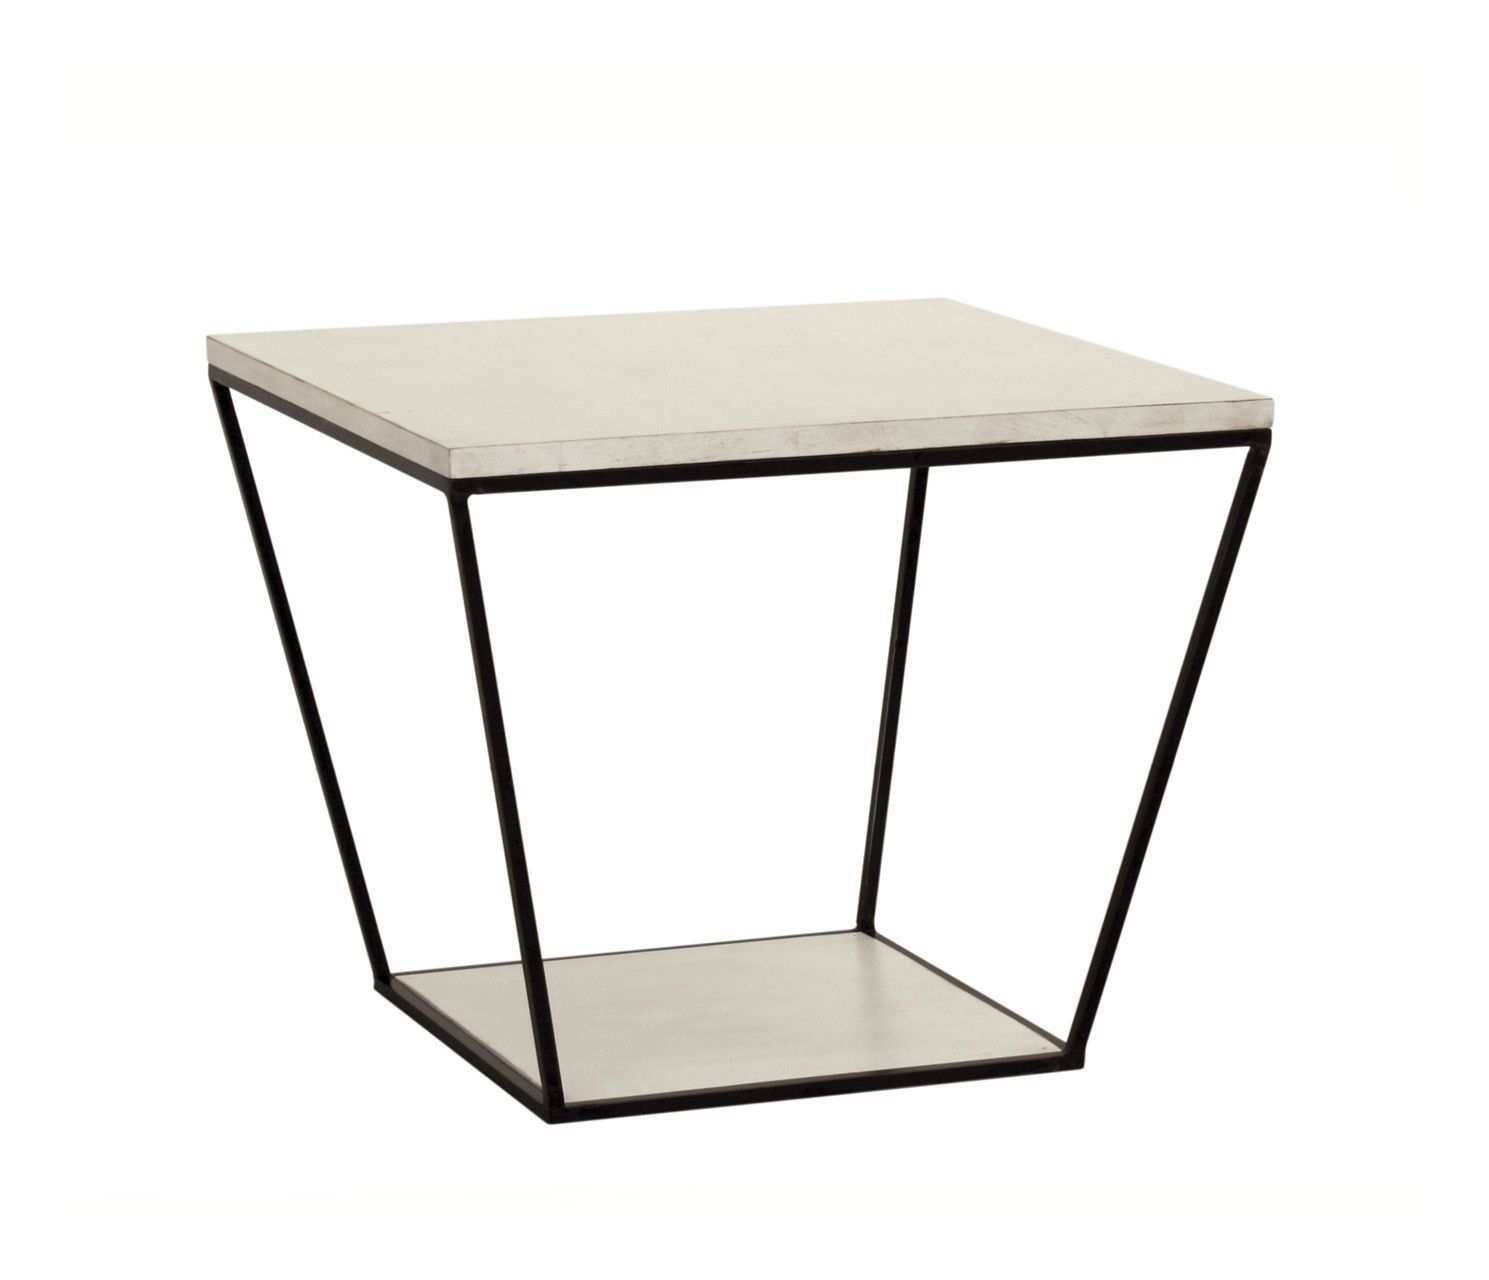 Blair Square Side Table in Raw Cotton design by Redford House